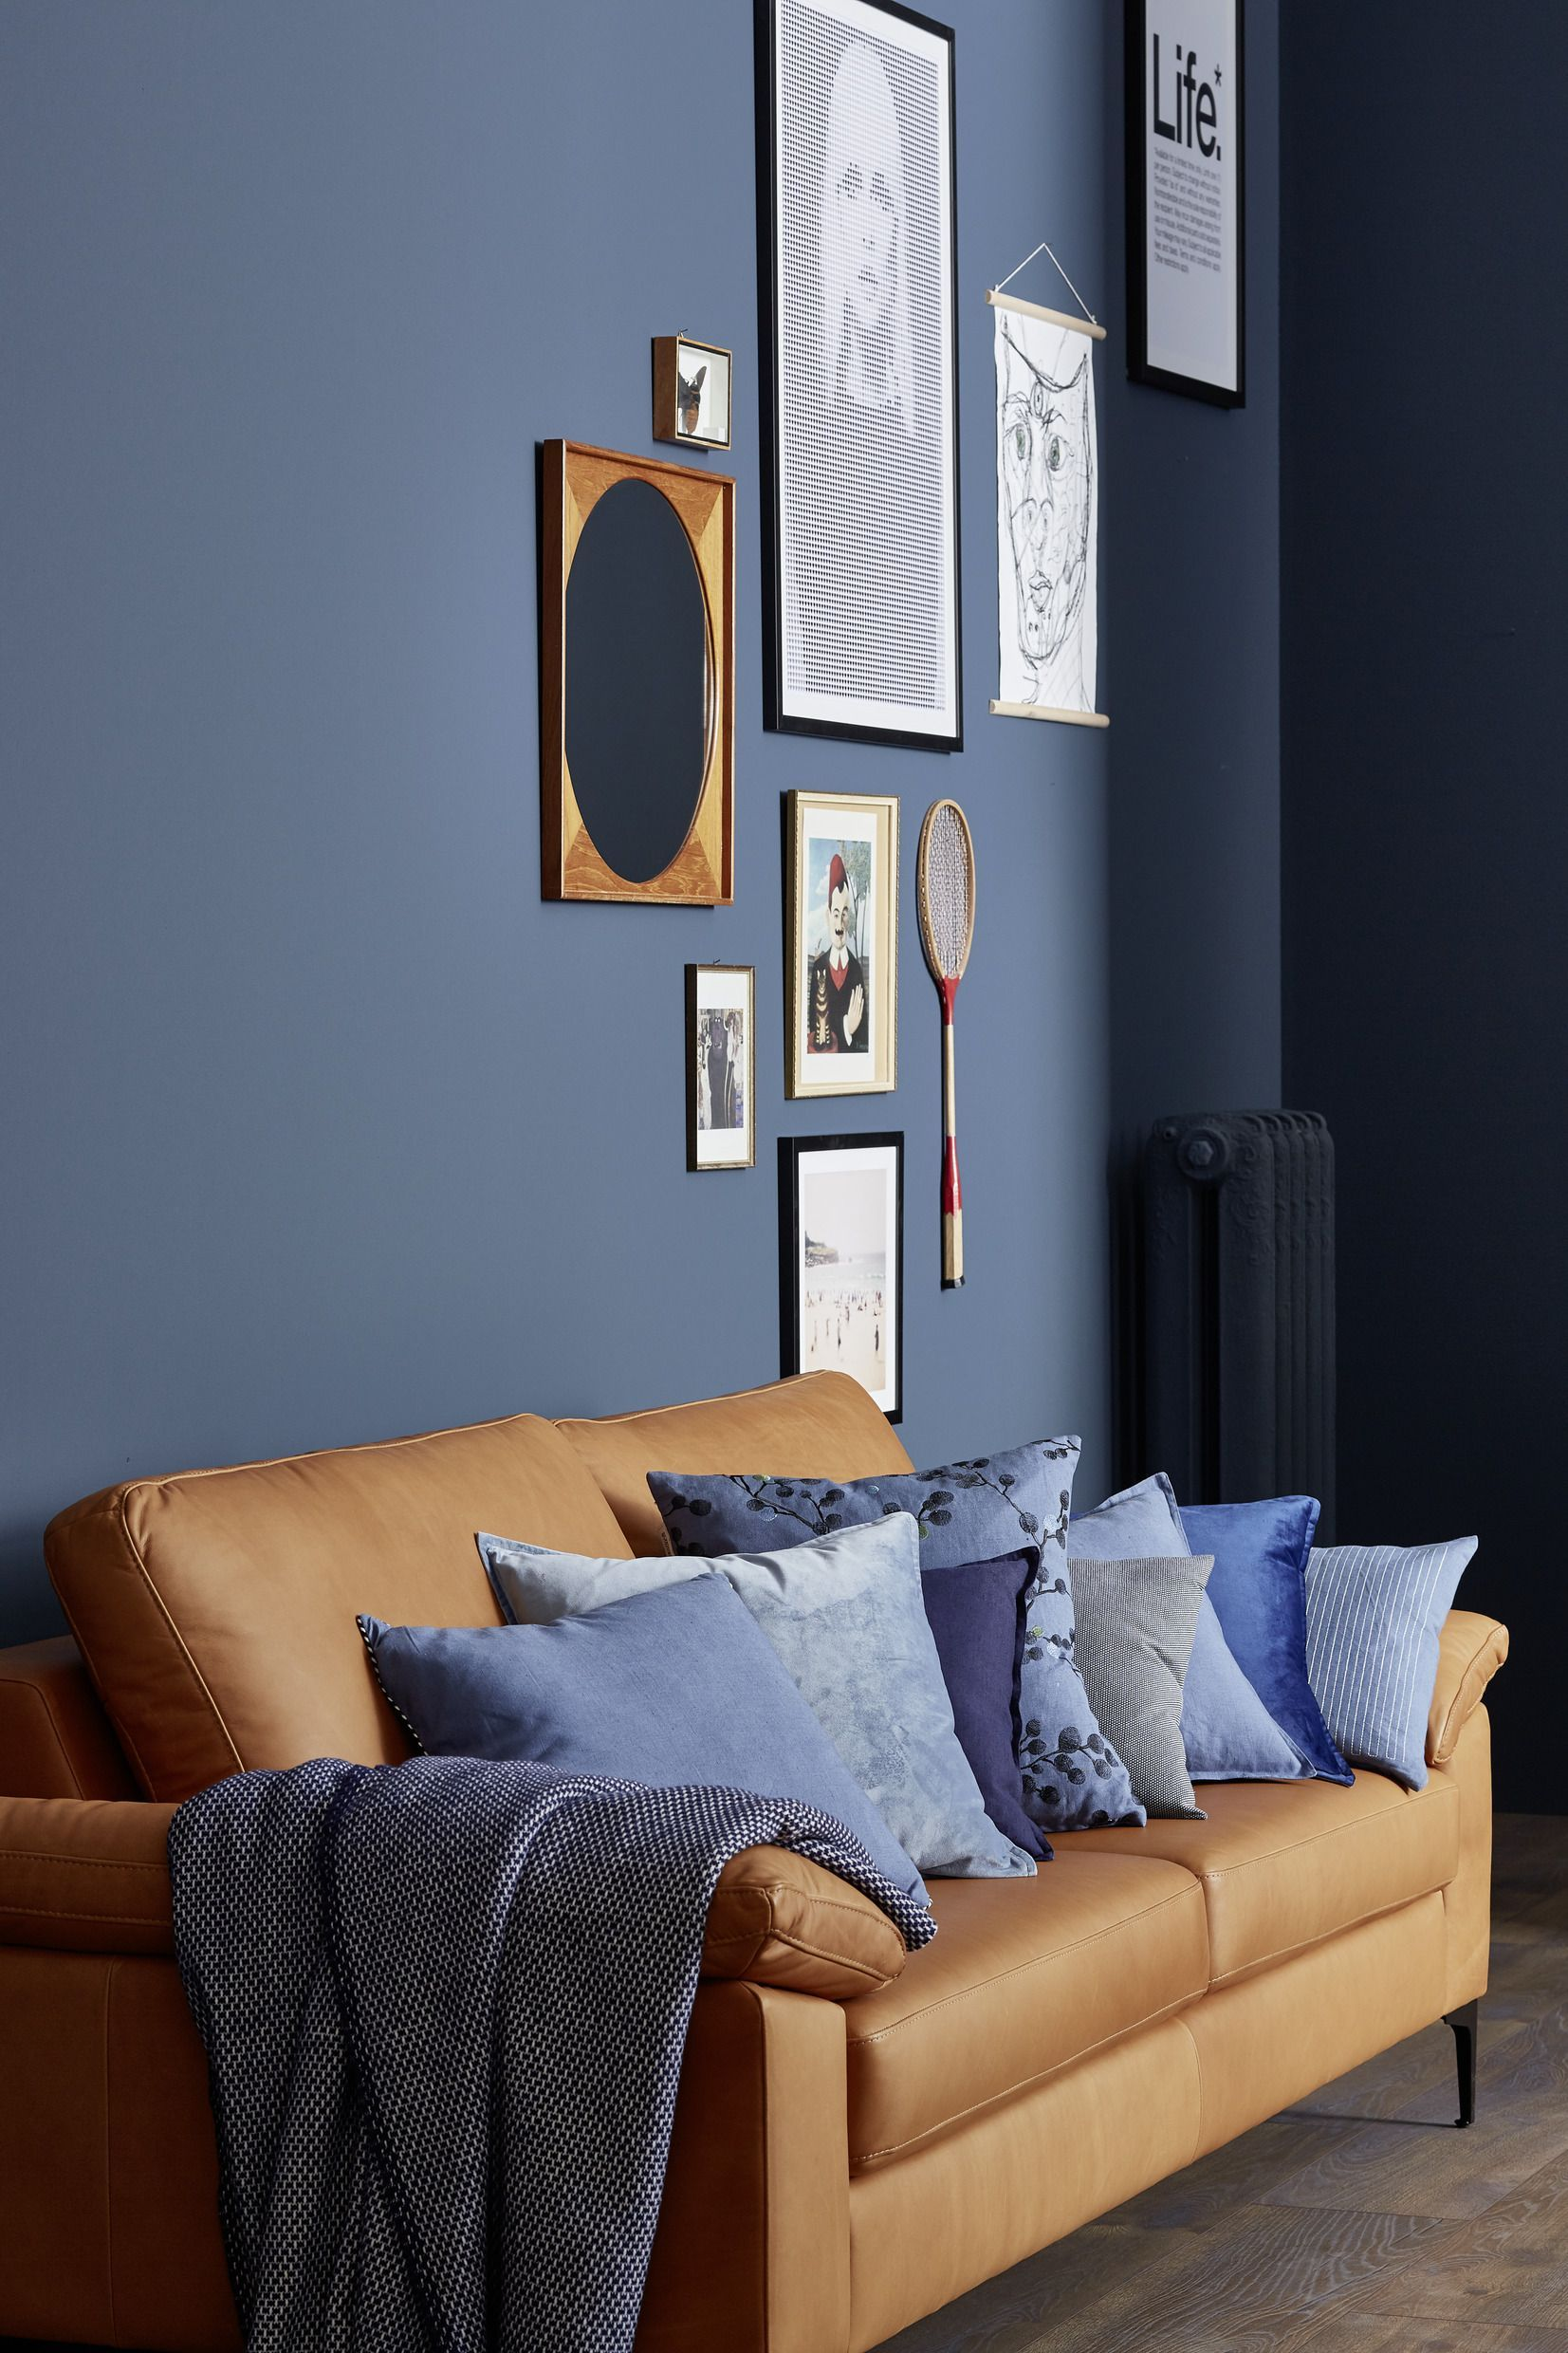 Blueberry Beautiful Living Trend Colors The Blue Black Of The Schoner Wohnen Trend Color Blueberry Mak In 2020 With Images Green Sofa Living Room Home Decor Living Room Decor